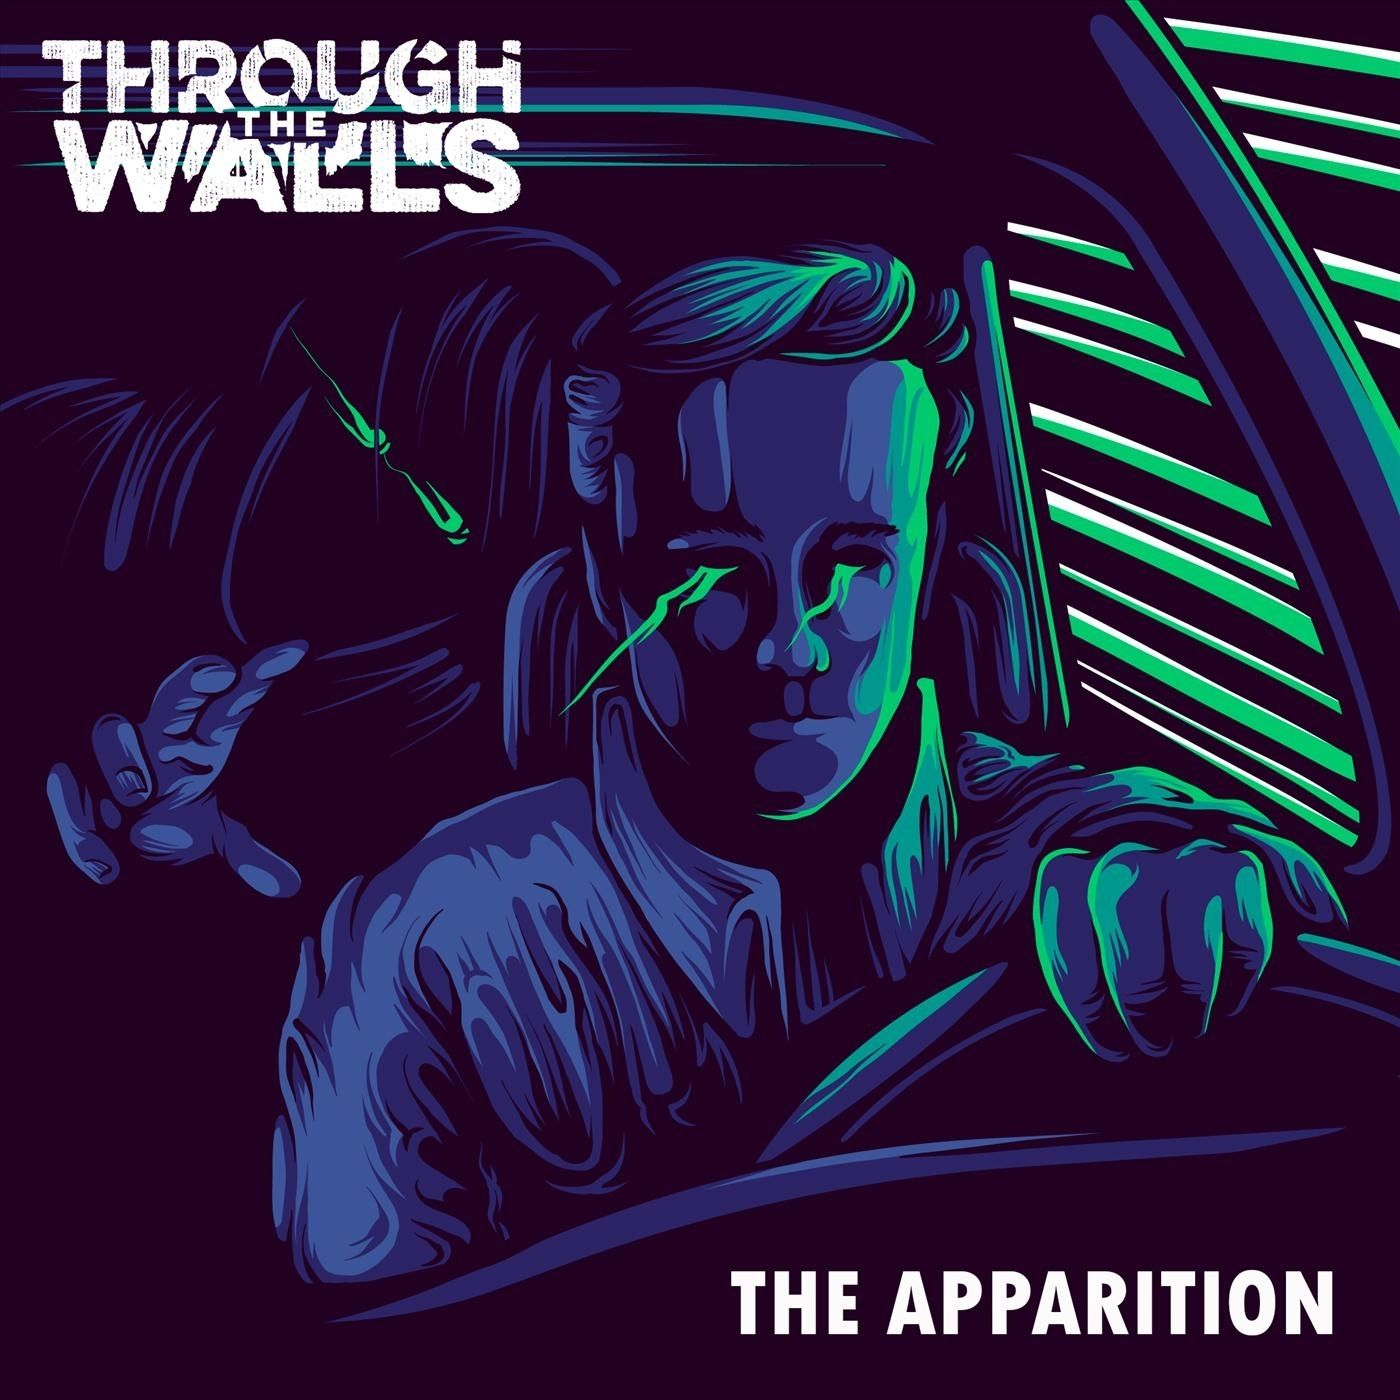 Through the Walls - The Apparition [single] (2020)